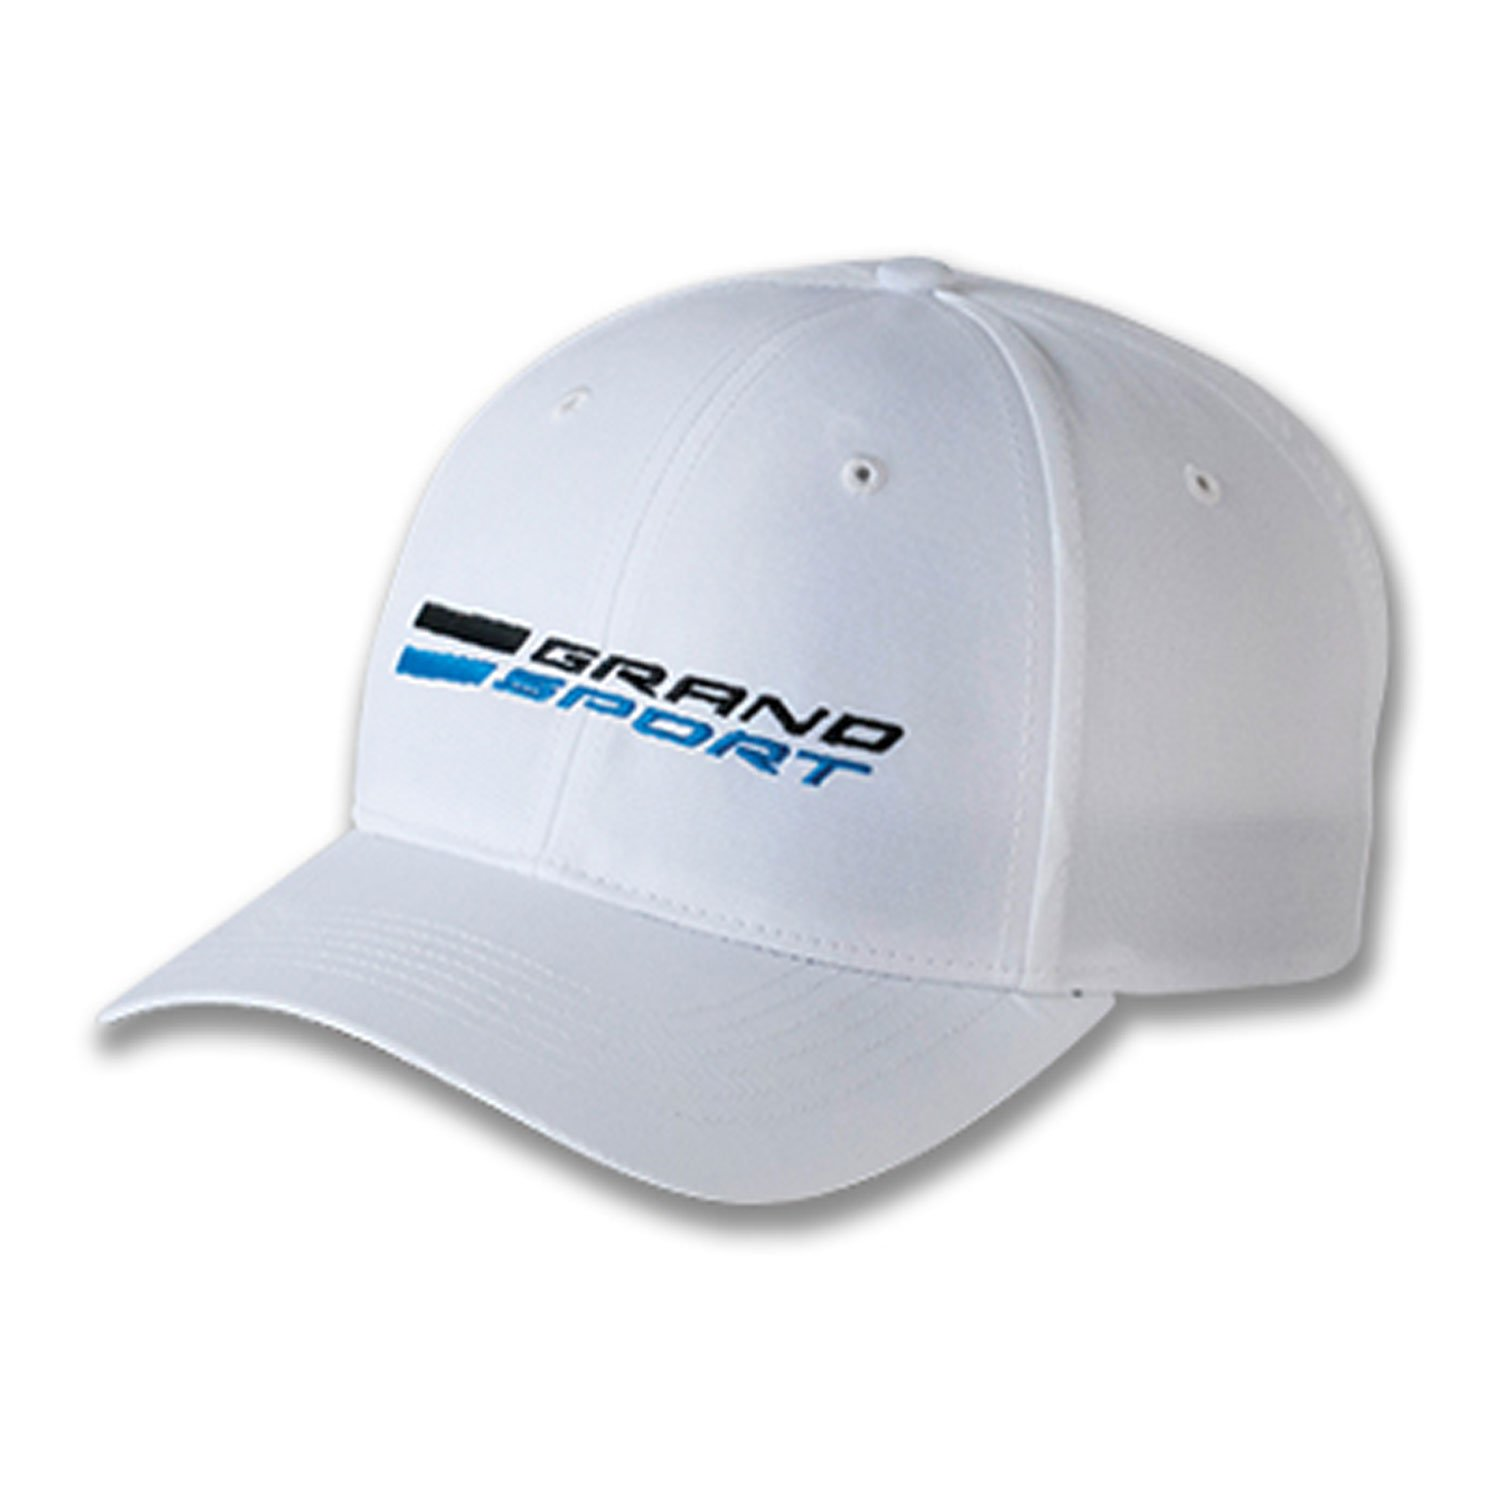 Gregs Automotive Corvette C7 Grand Sport White Logo Hat Cap Chevrolet Bundle with Driving Style Decal